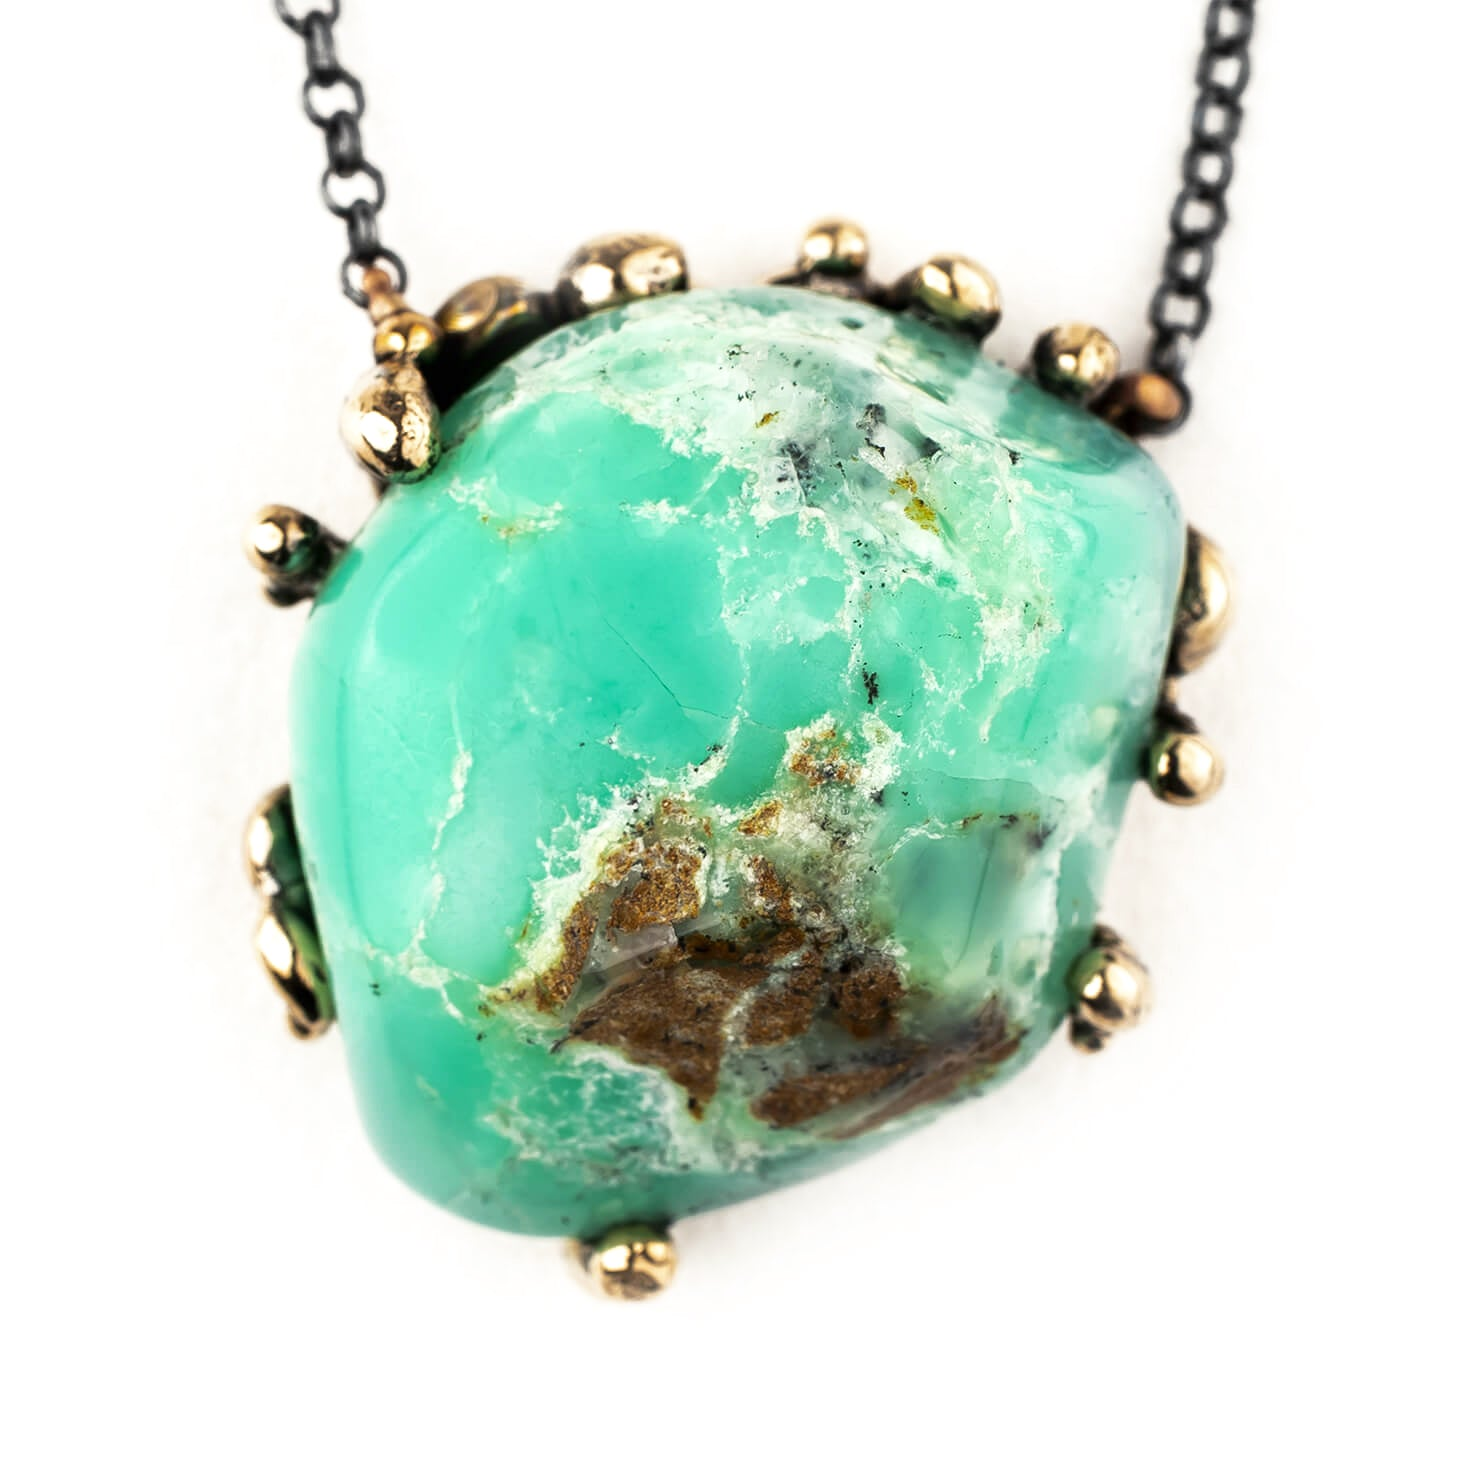 Crystals for new moms - Chrysopal necklace